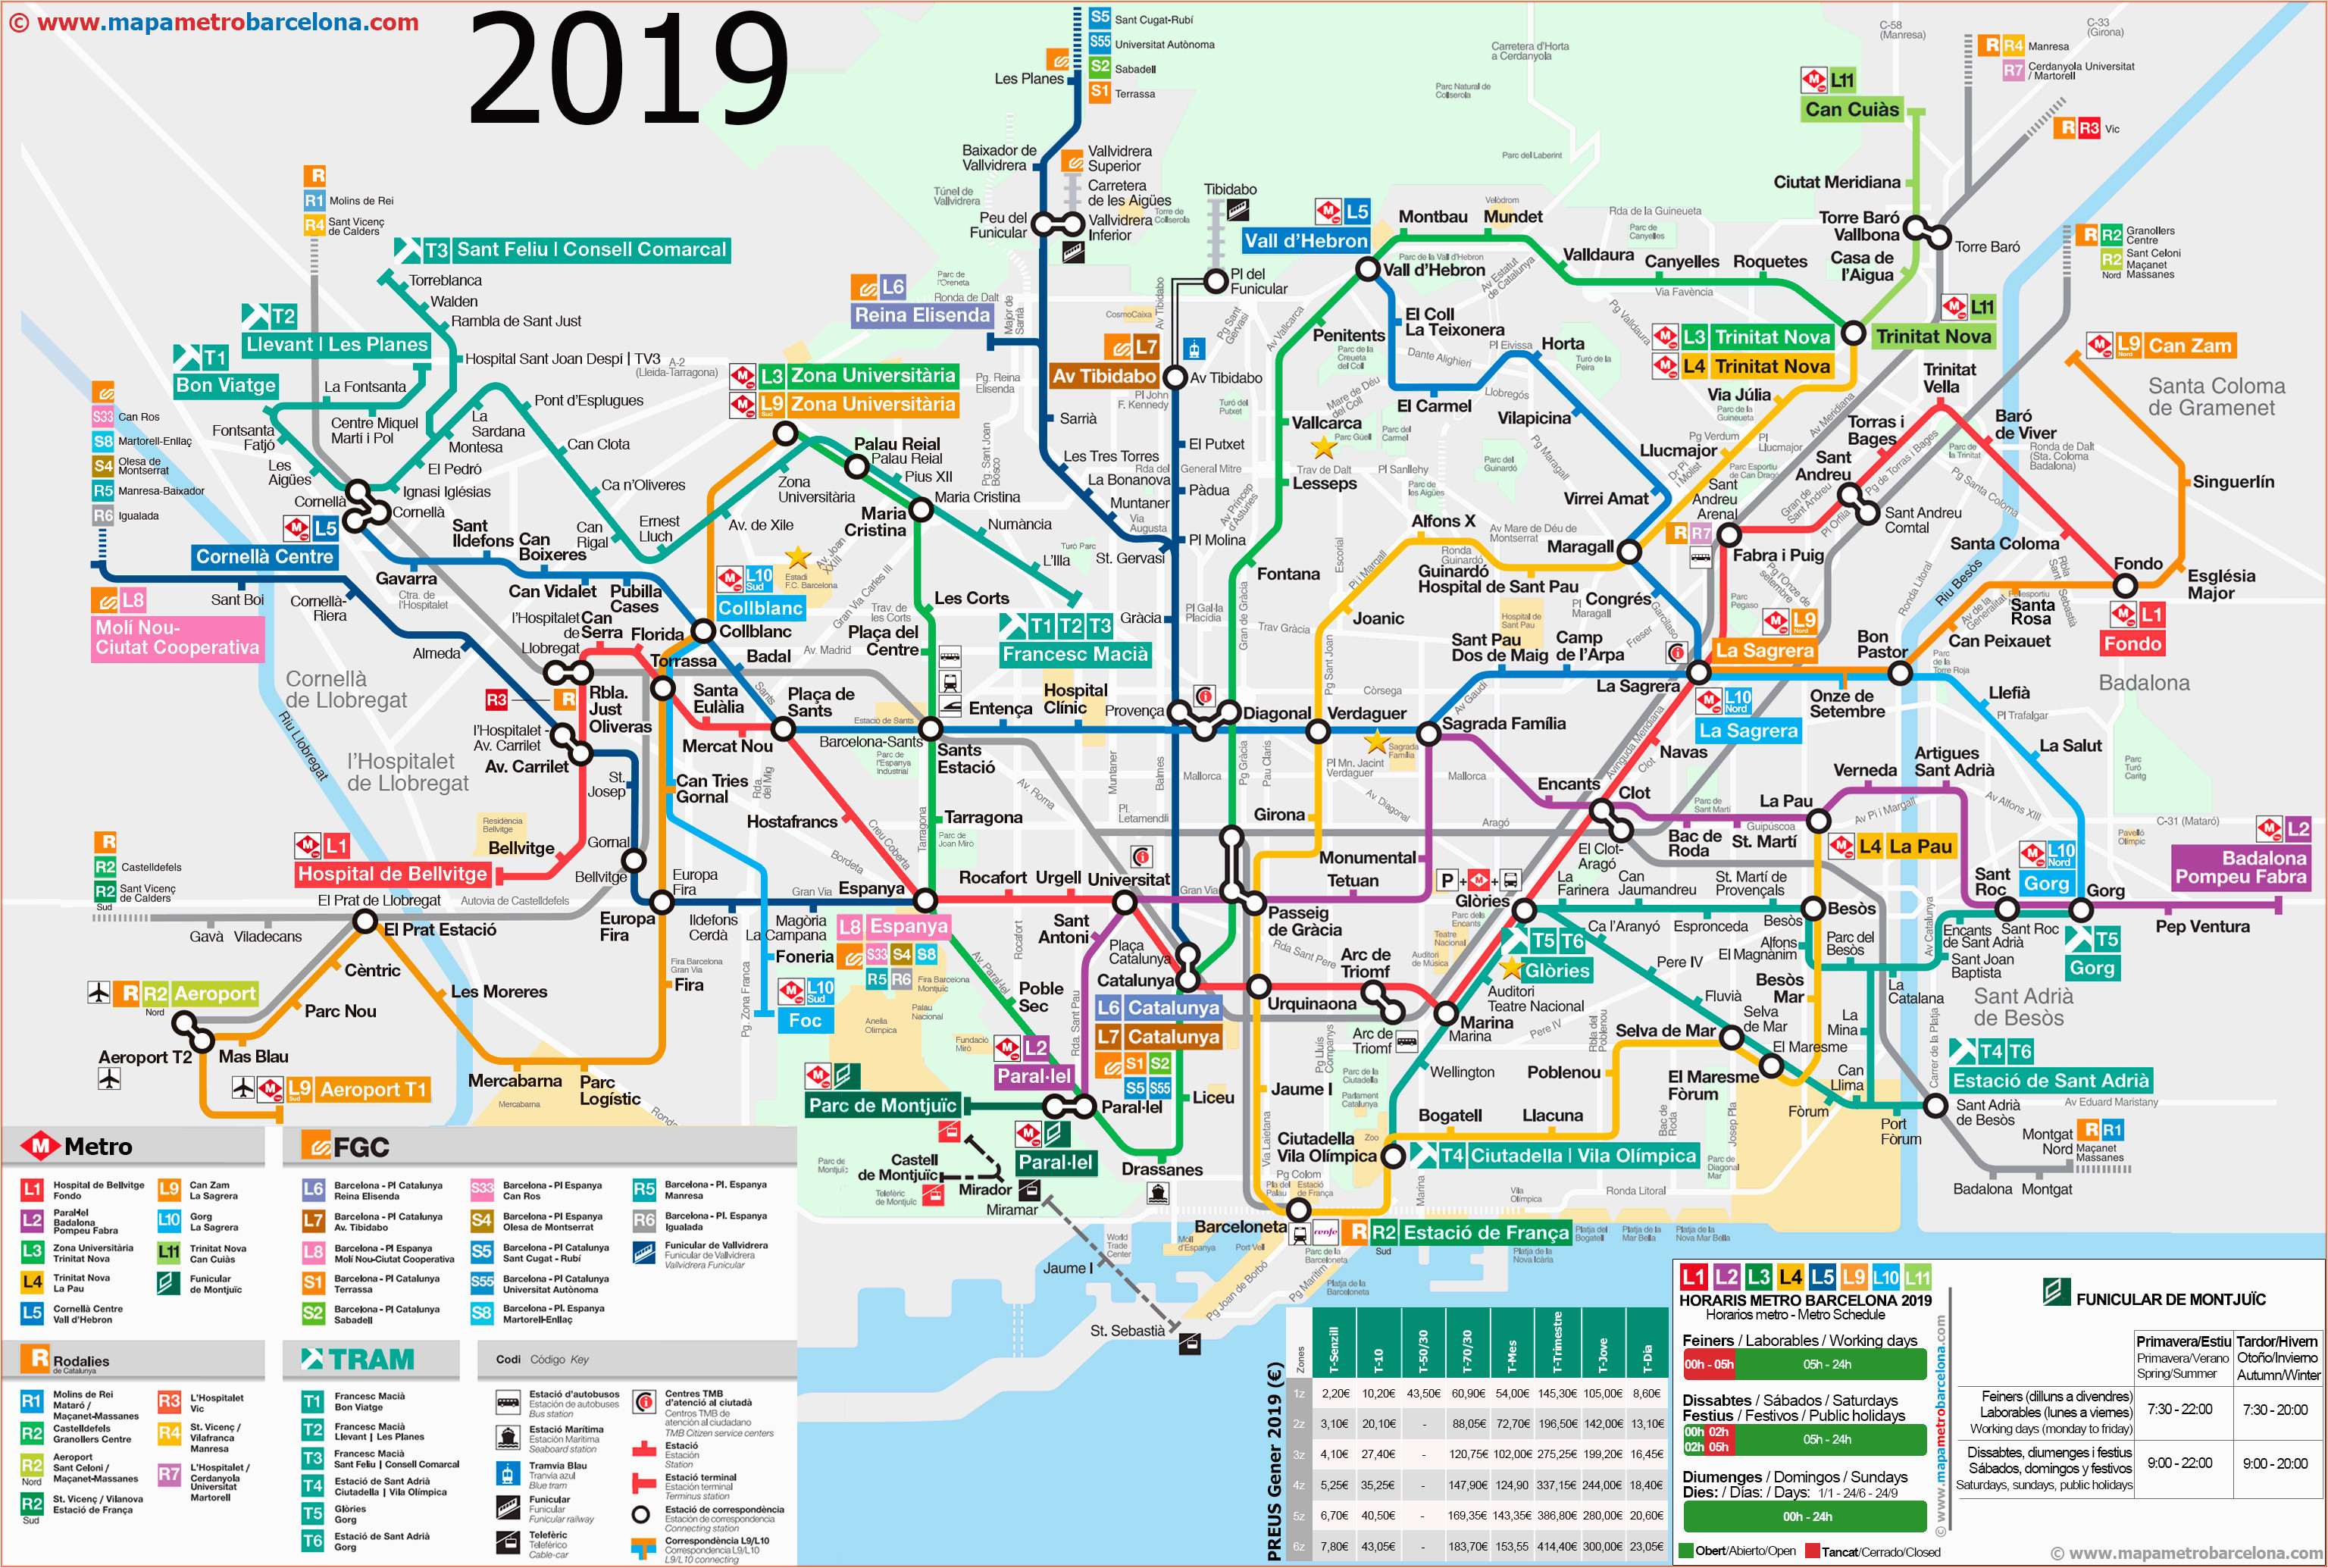 What The Roman Empire Would Look Like If It Was A Subway Map.Rome Italy Metro Map Metro Map Of Barcelona 2019 The Best Secretmuseum